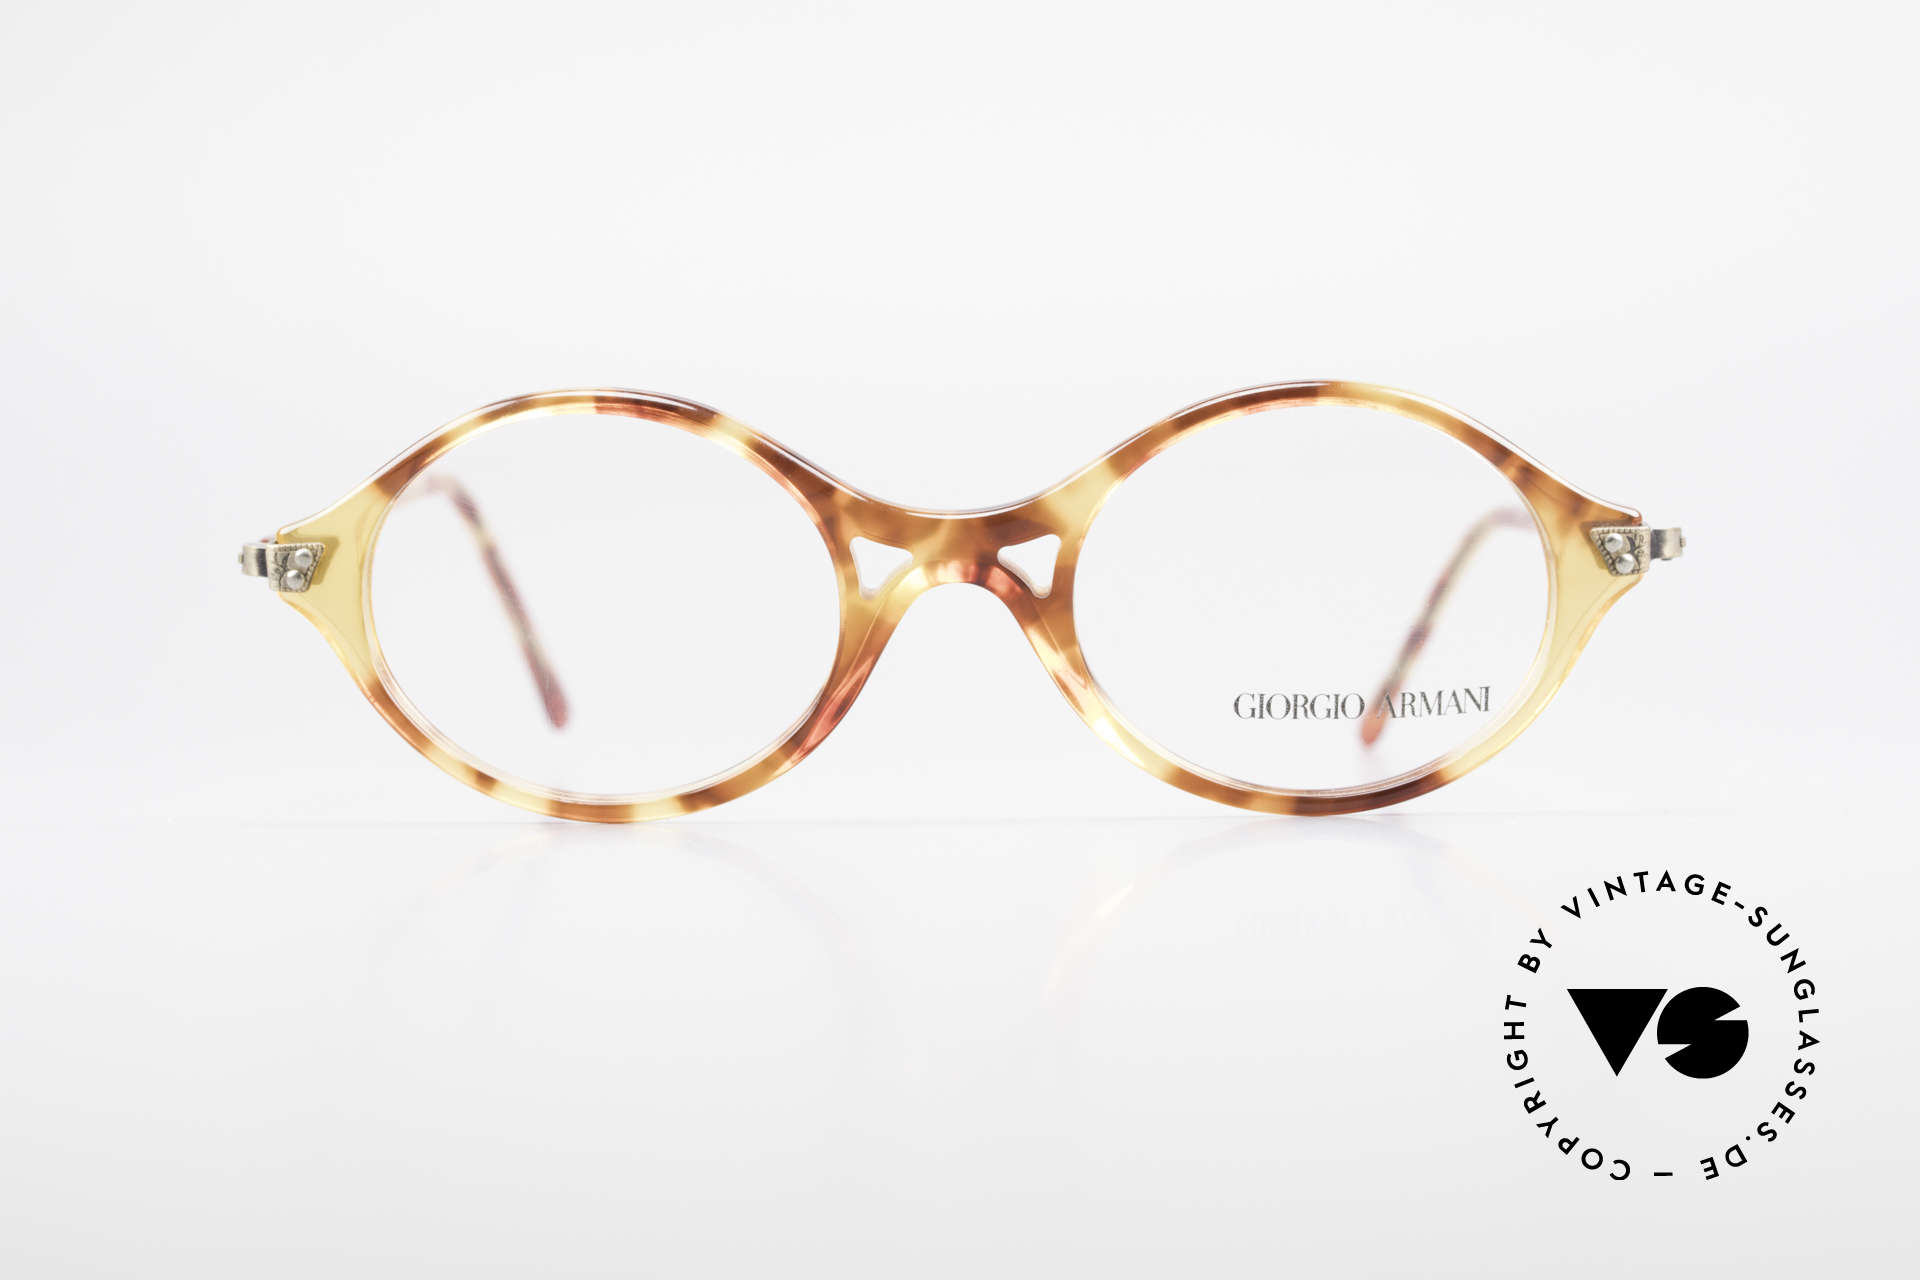 Giorgio Armani 339 Small Oval 90's Eyeglasses, a true classic in design & coloring (timeless elegant), Made for Men and Women